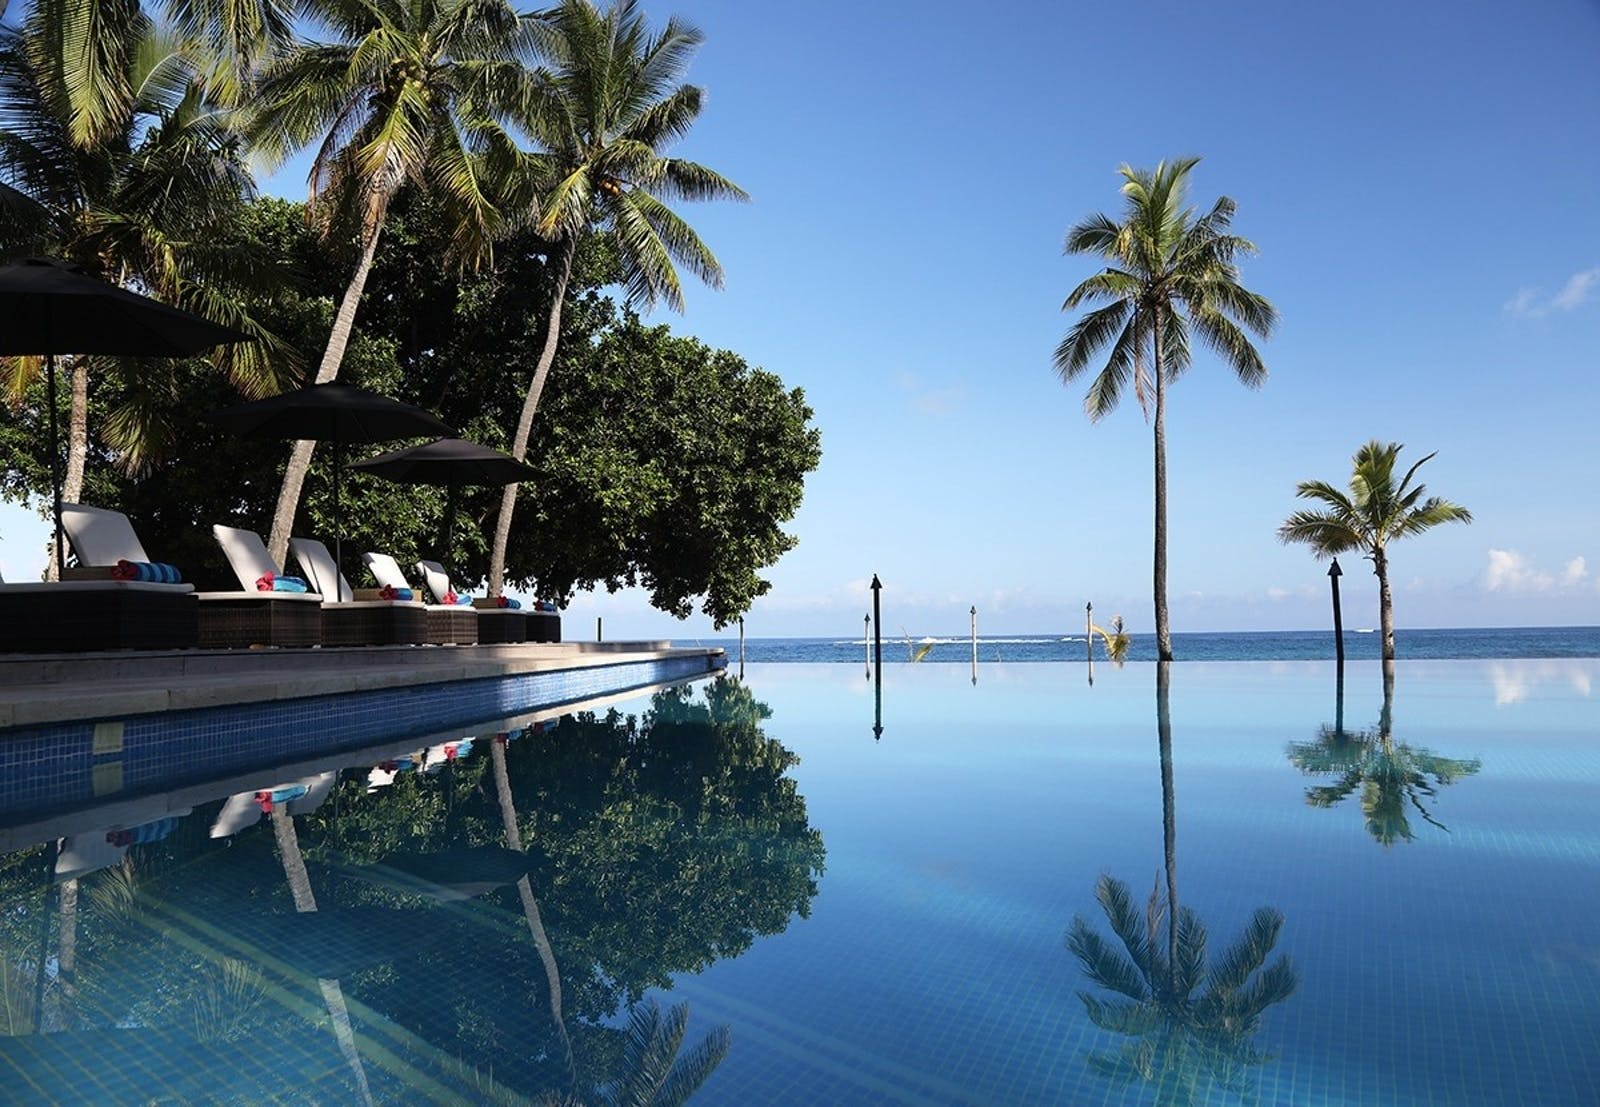 Pool View at Yasawa Island Resort and Spa, Fiji